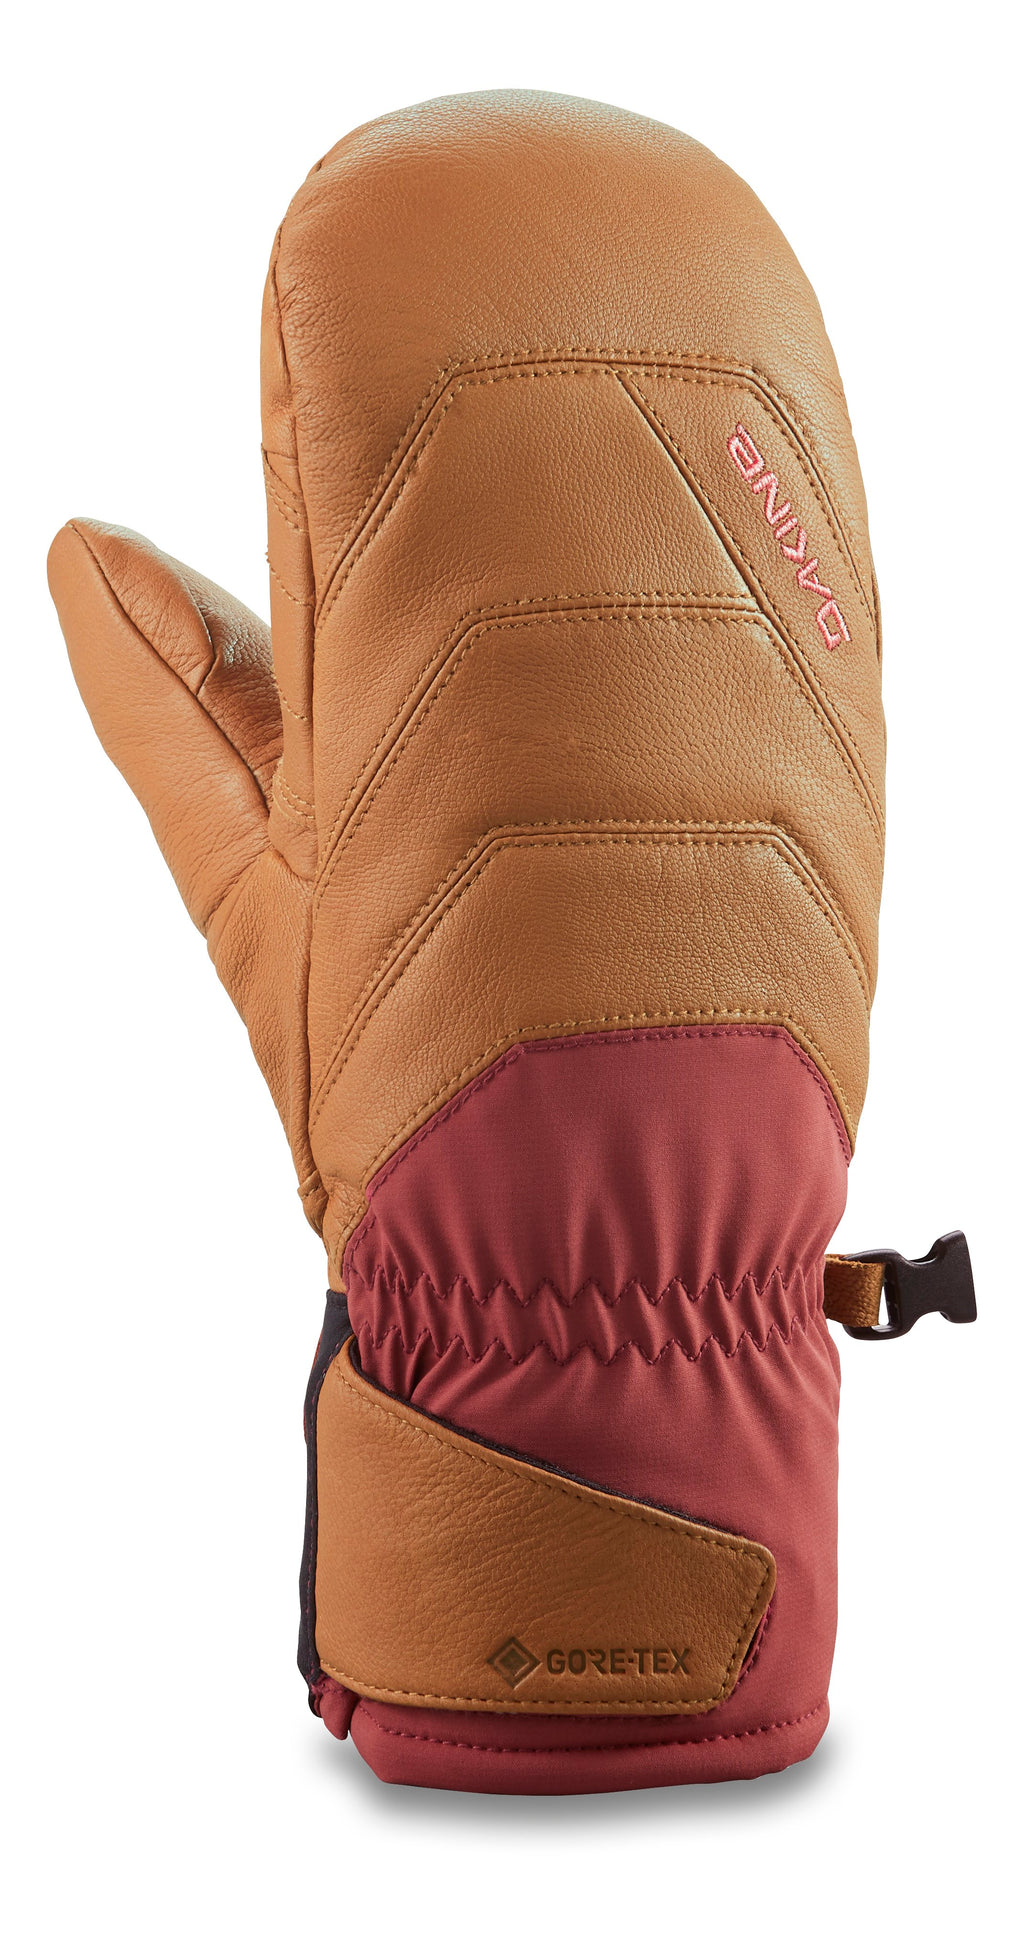 Galaxy Gore-Tex Mitten - Women's